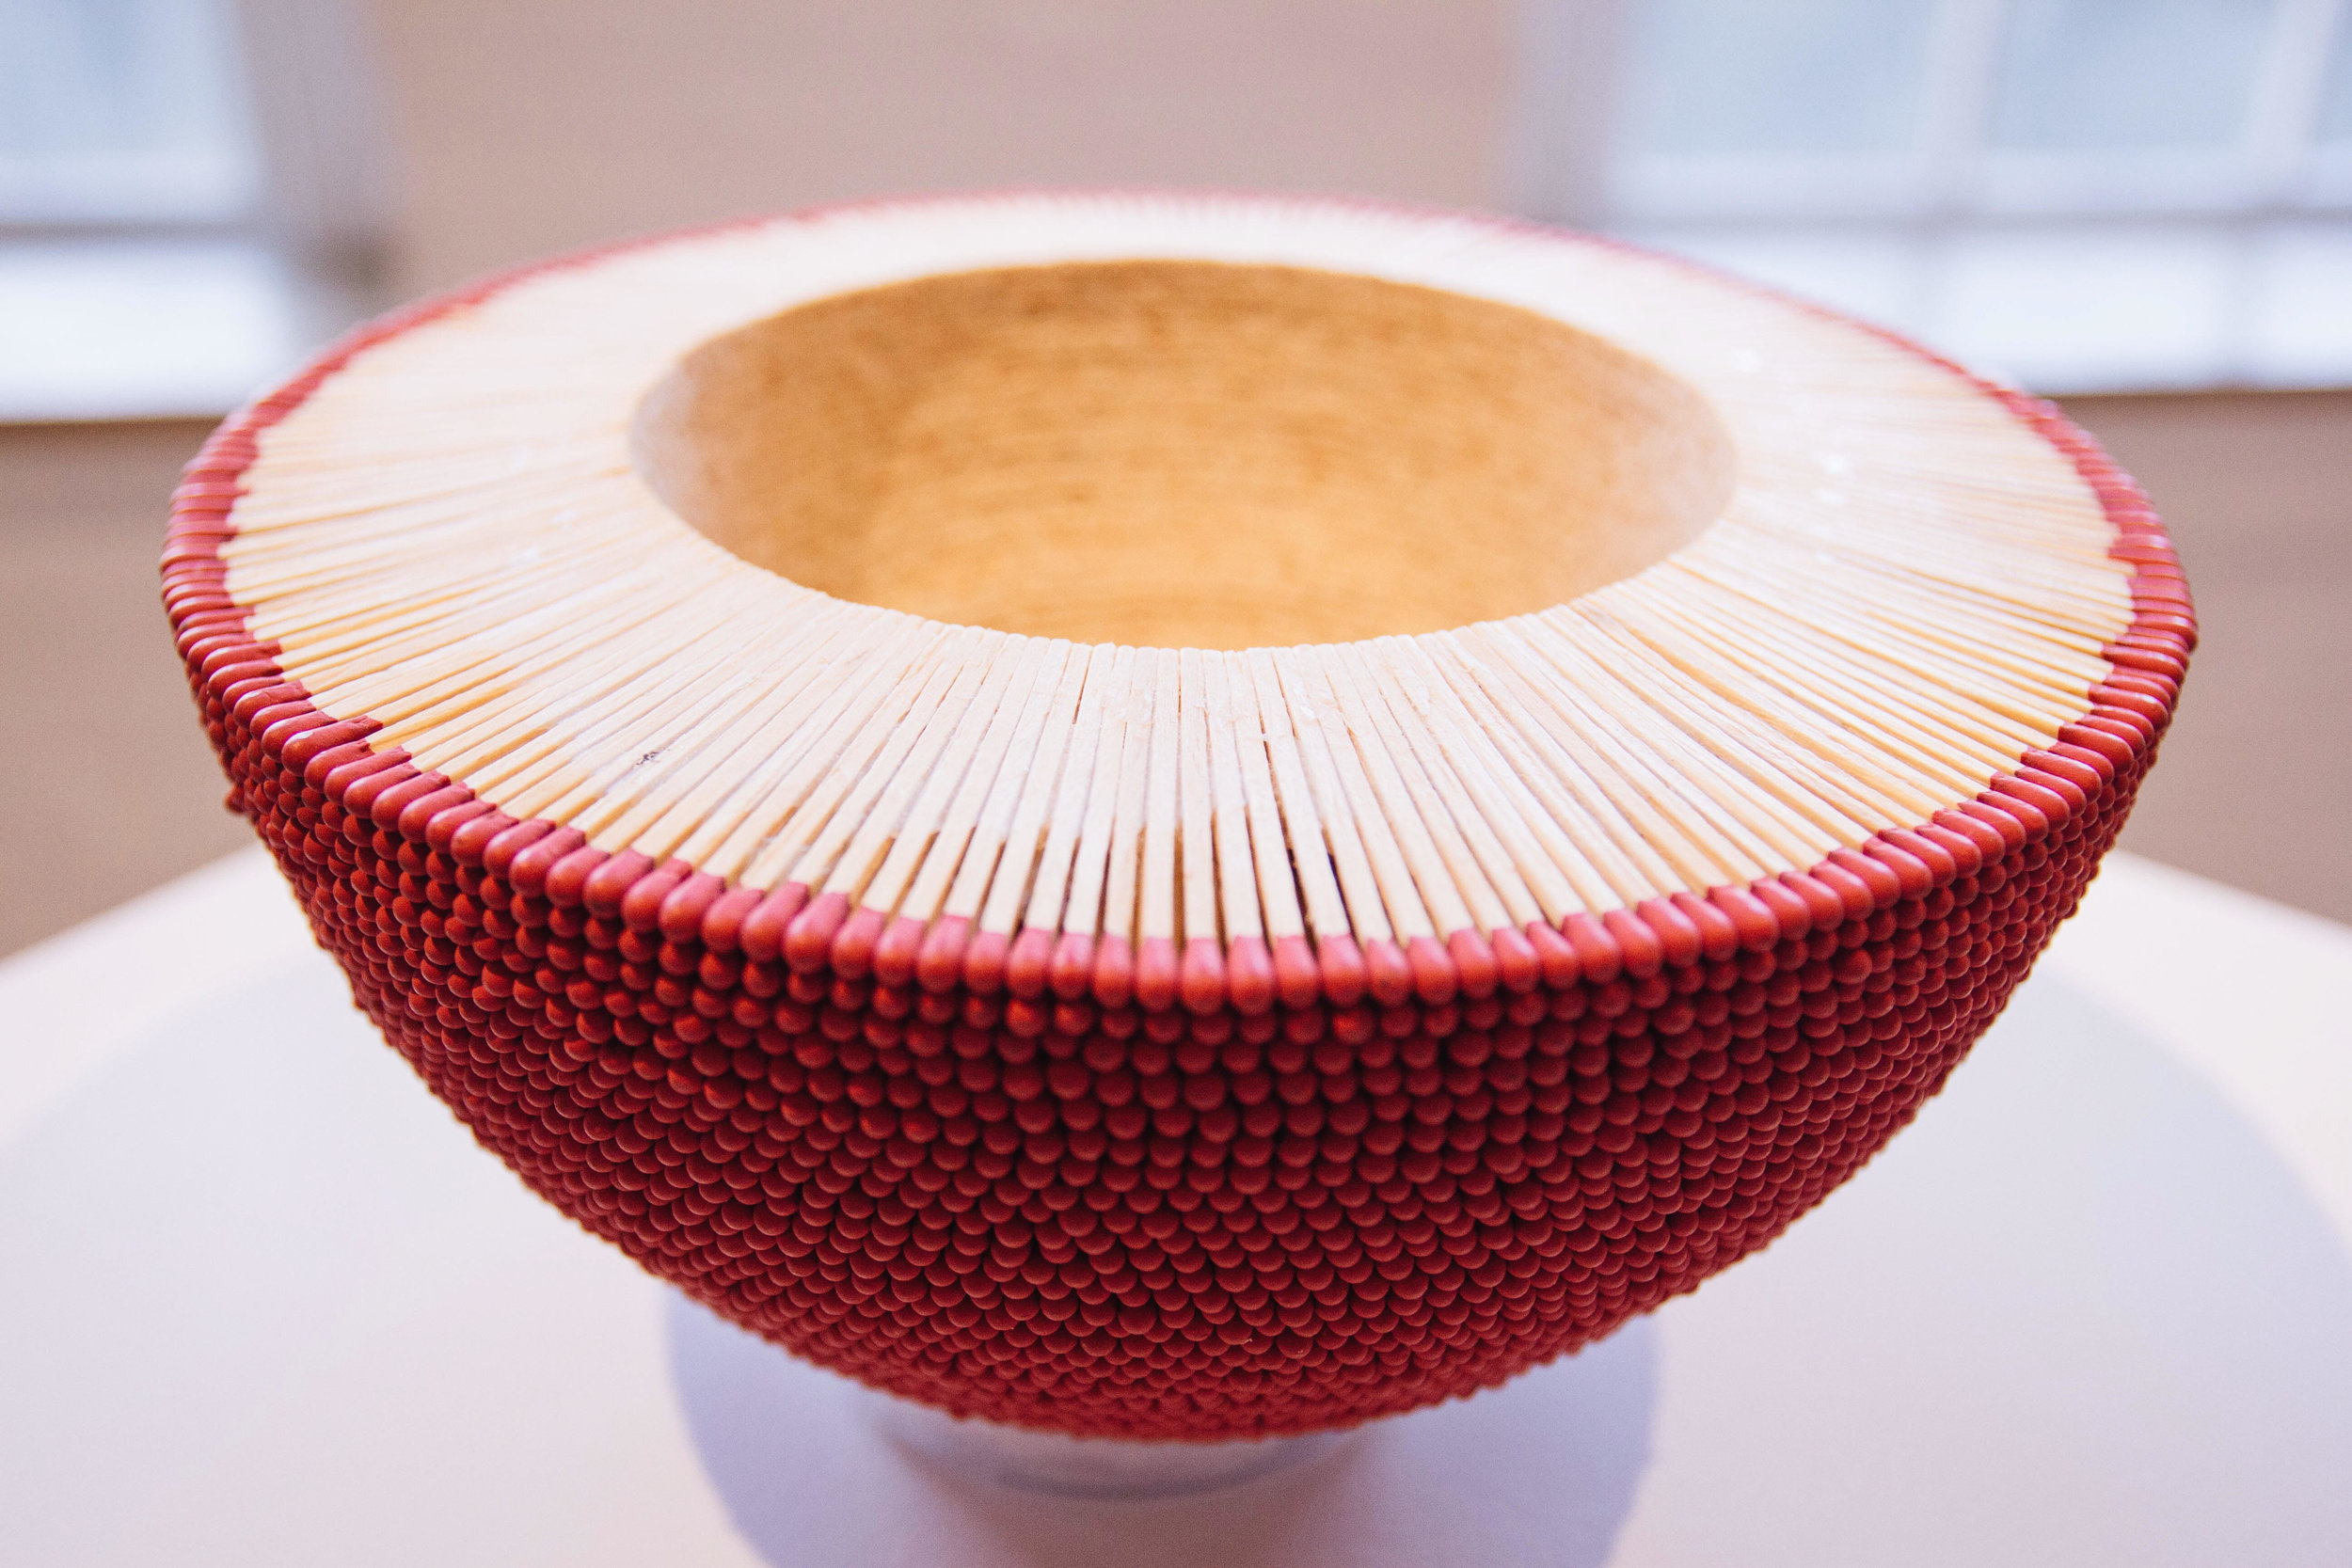 {This is a bowl made of matches! To be honest I was tempted to light it on fire to see what would happen...}